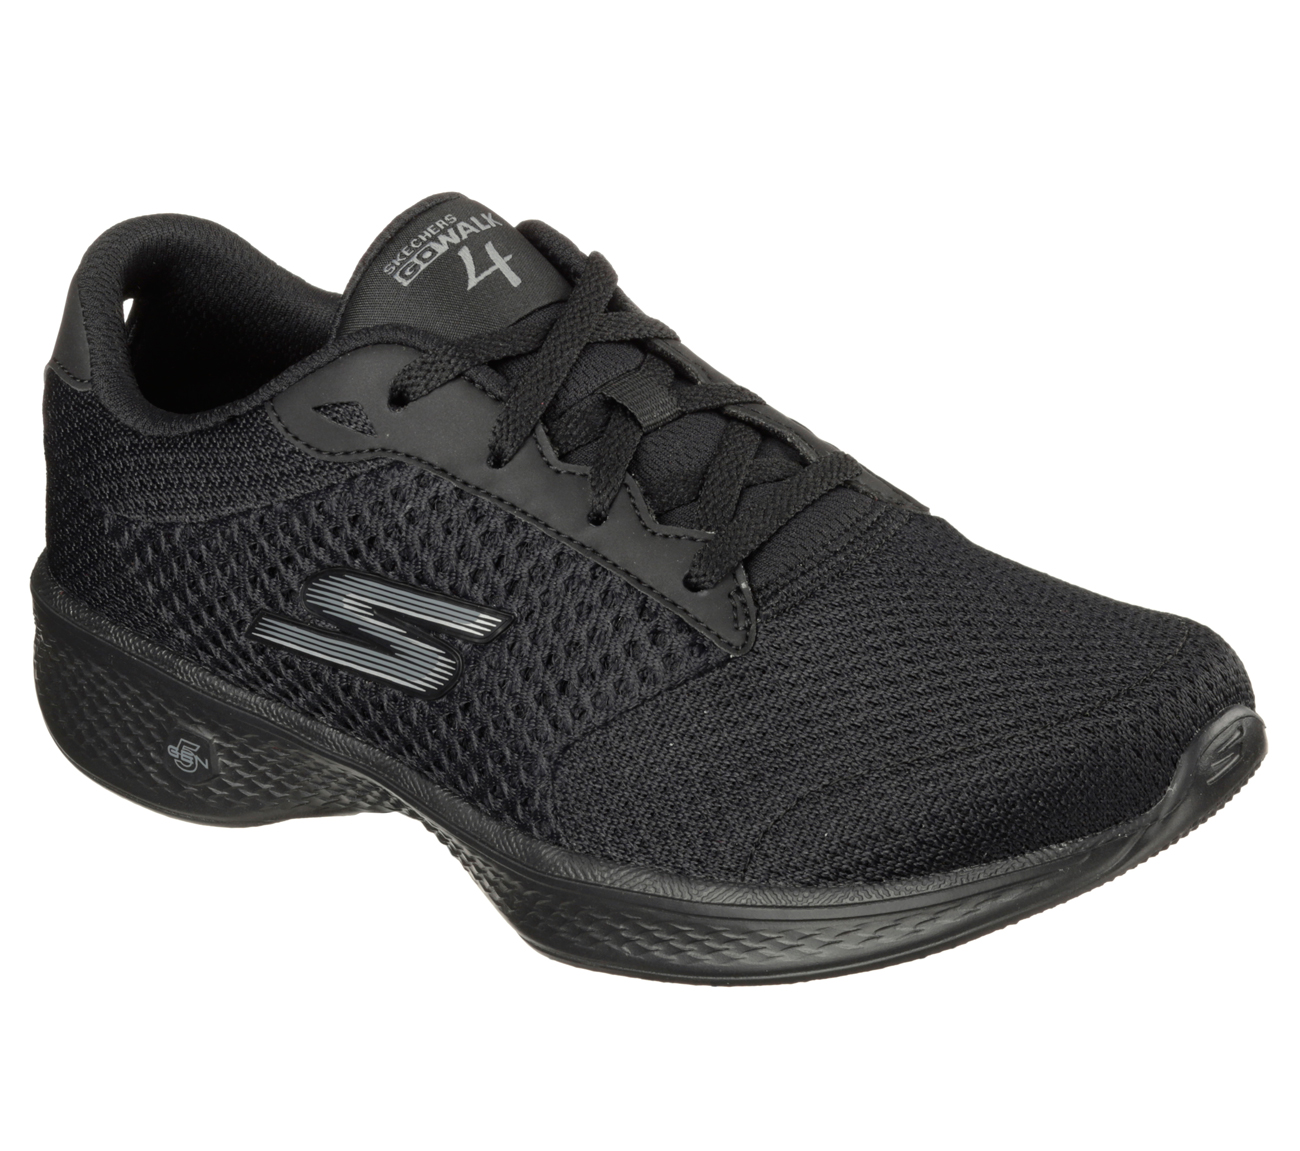 Skechers Go Walk  Mens Walking Shoes